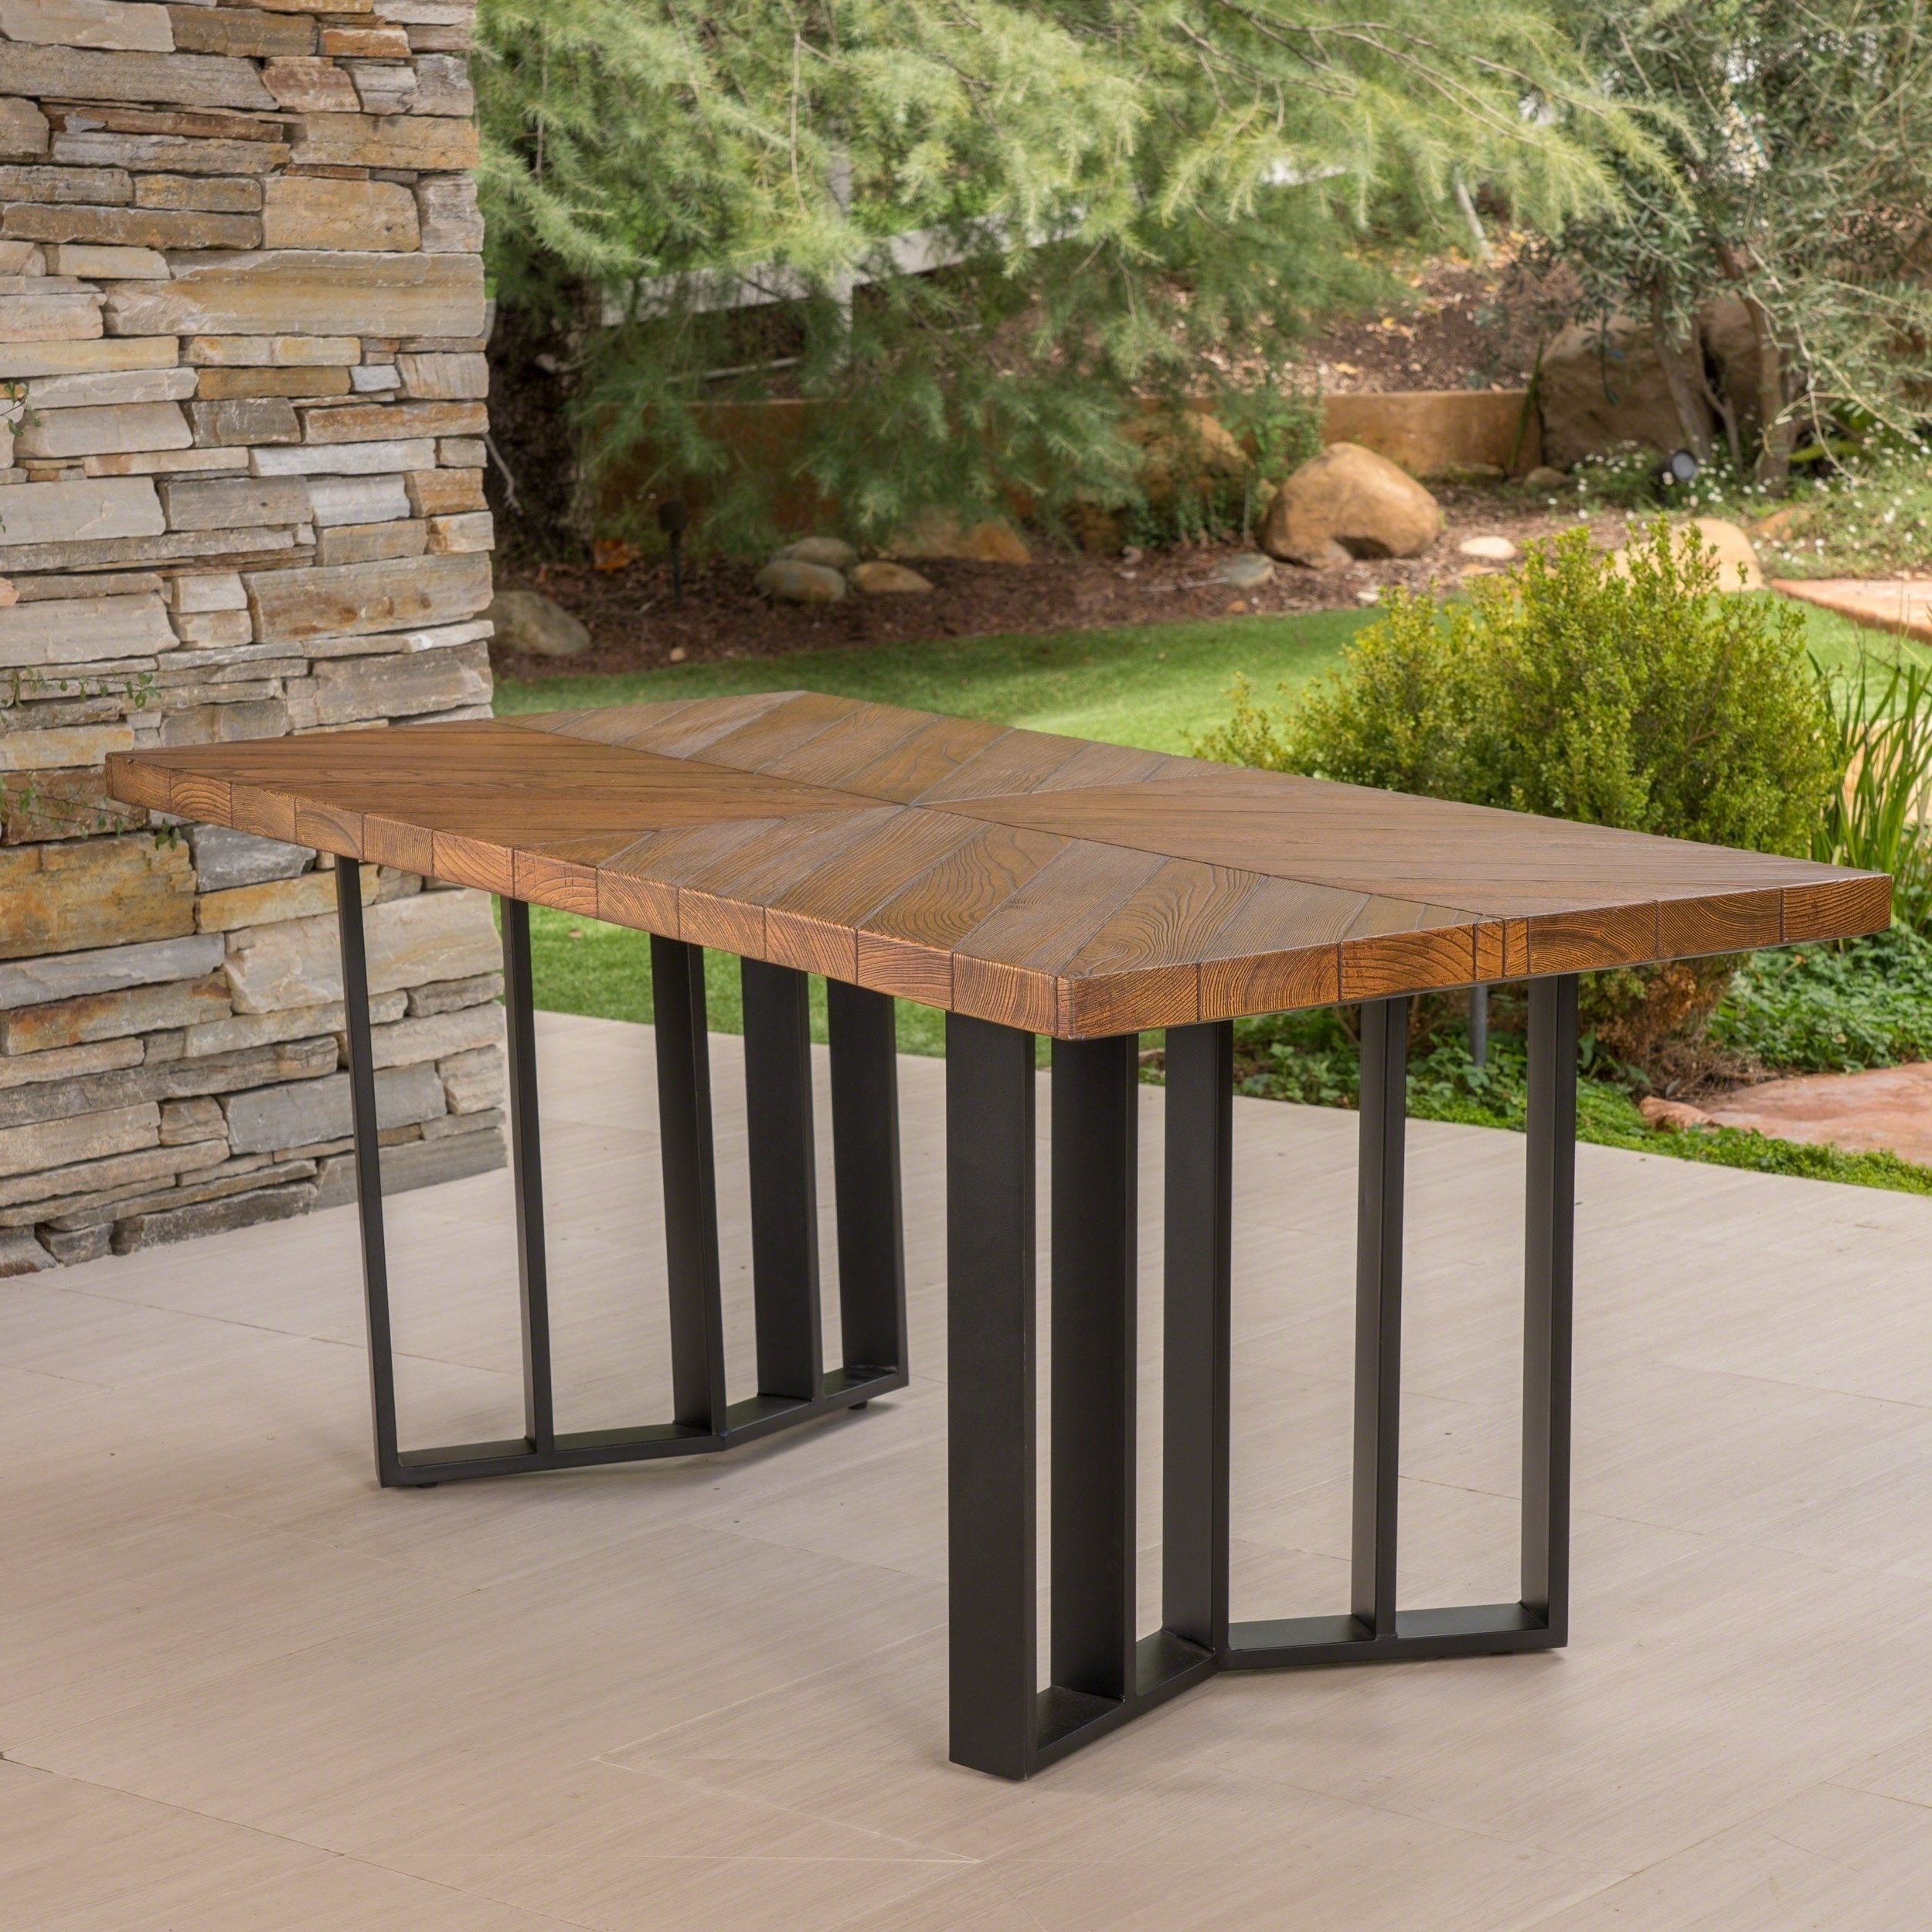 Verona Dining Tables for Widely used Shop Verona Outdoor Rectangle Light-Weight Concrete Dining Table